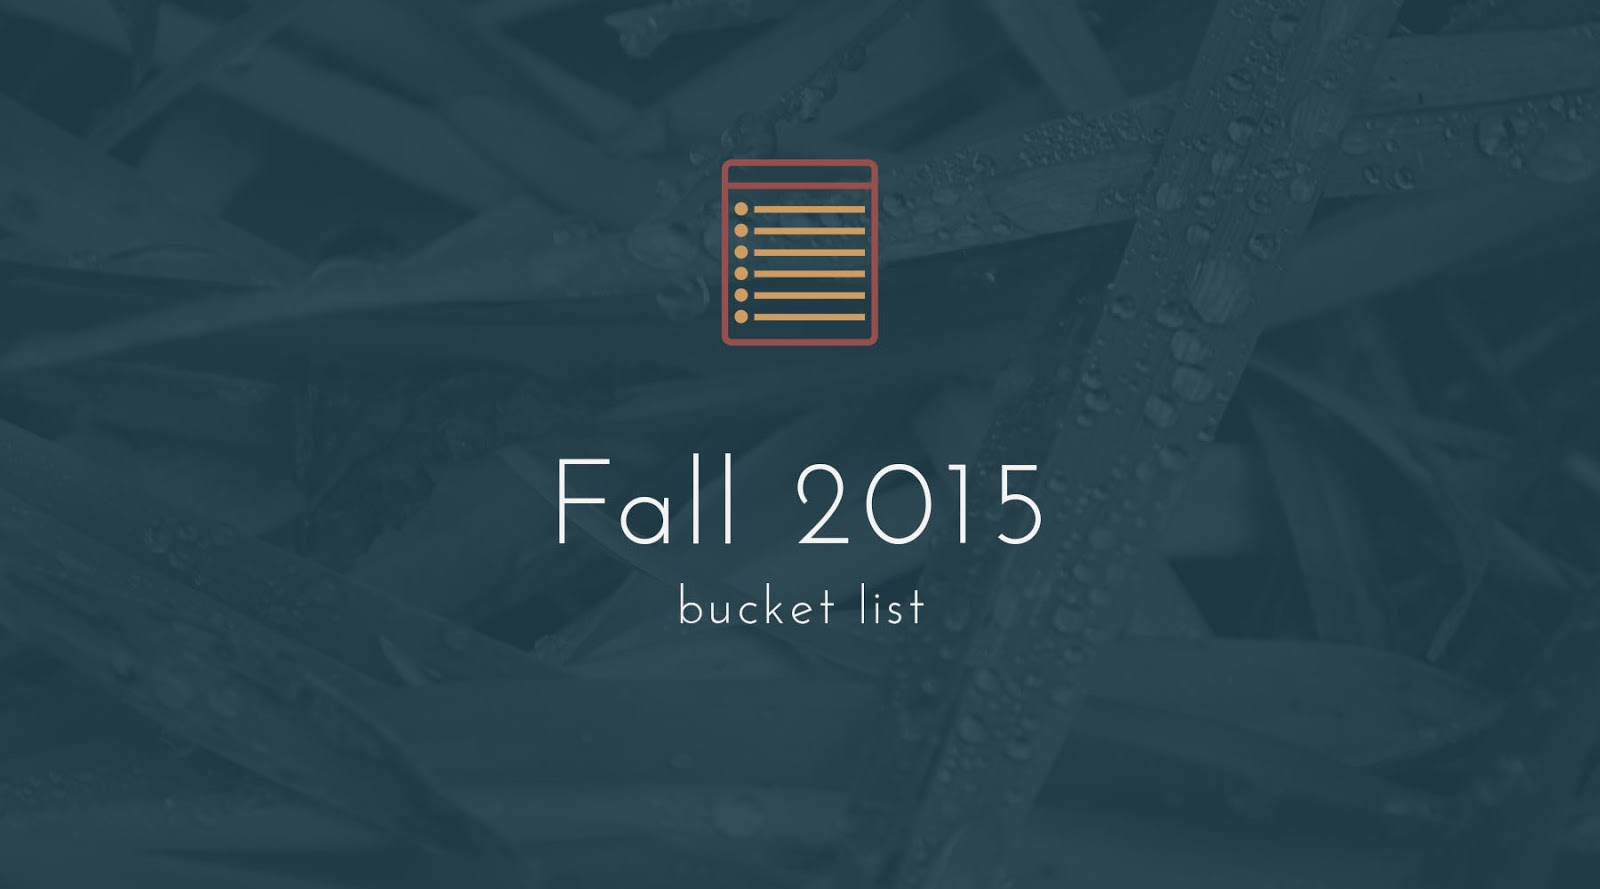 Bucket List Fall 2015